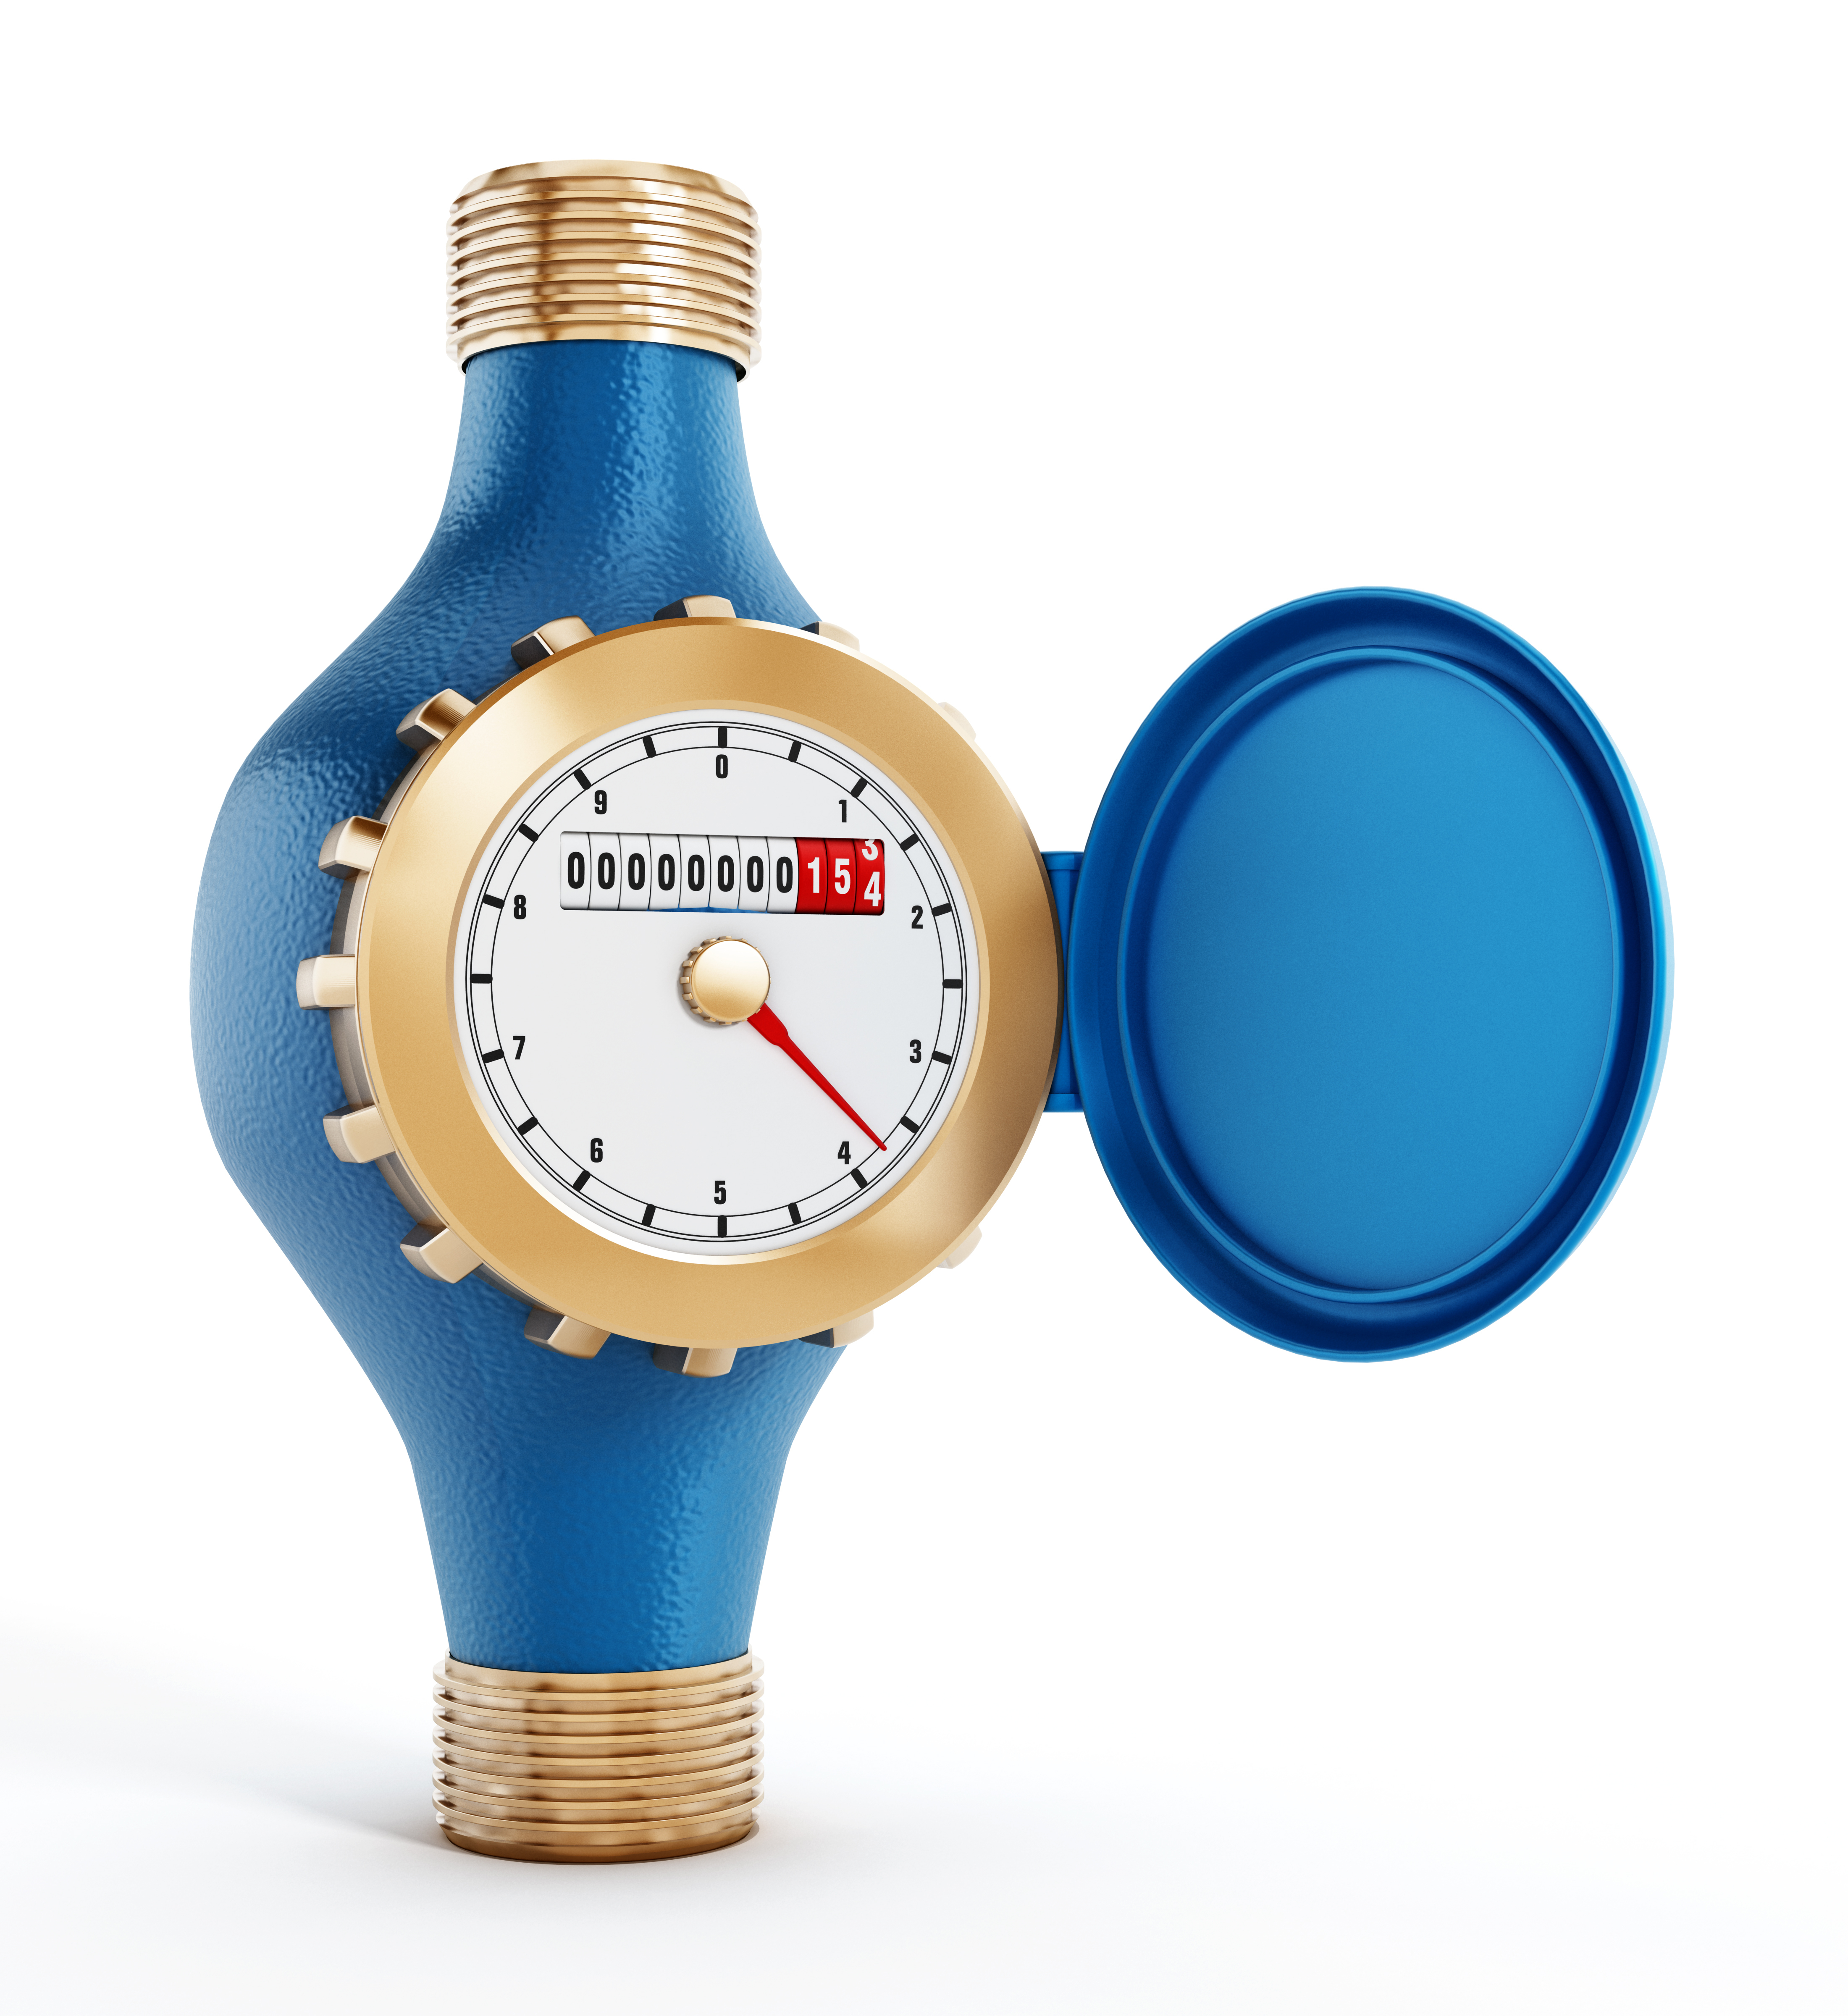 Property Management 101: How To Read My Water Meter